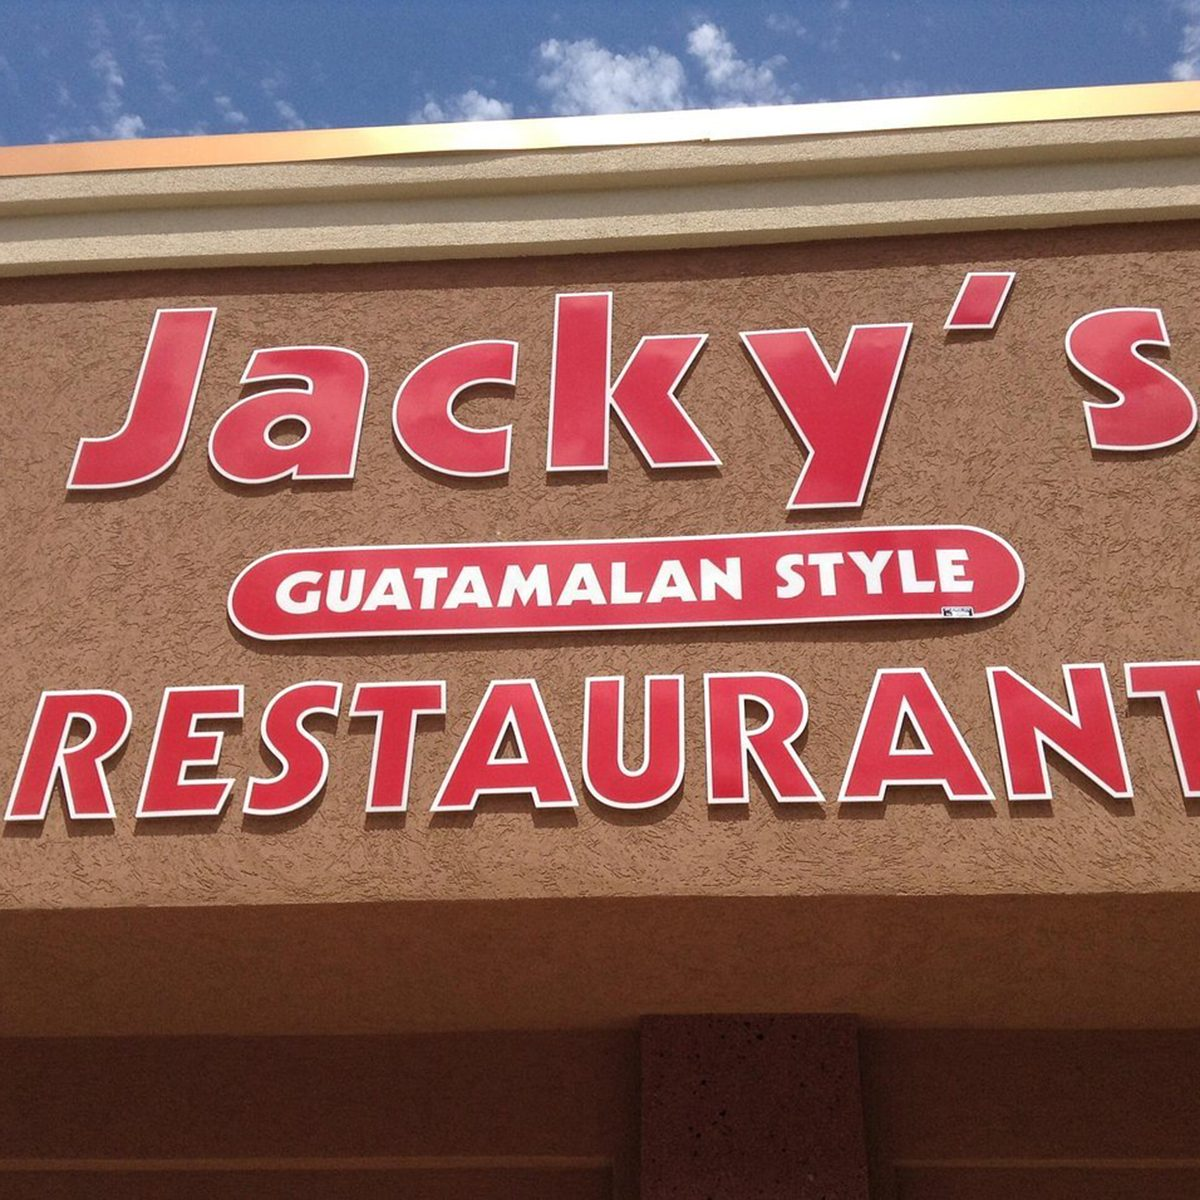 South Dakota: Jacky's Restaurant, Sioux Falls